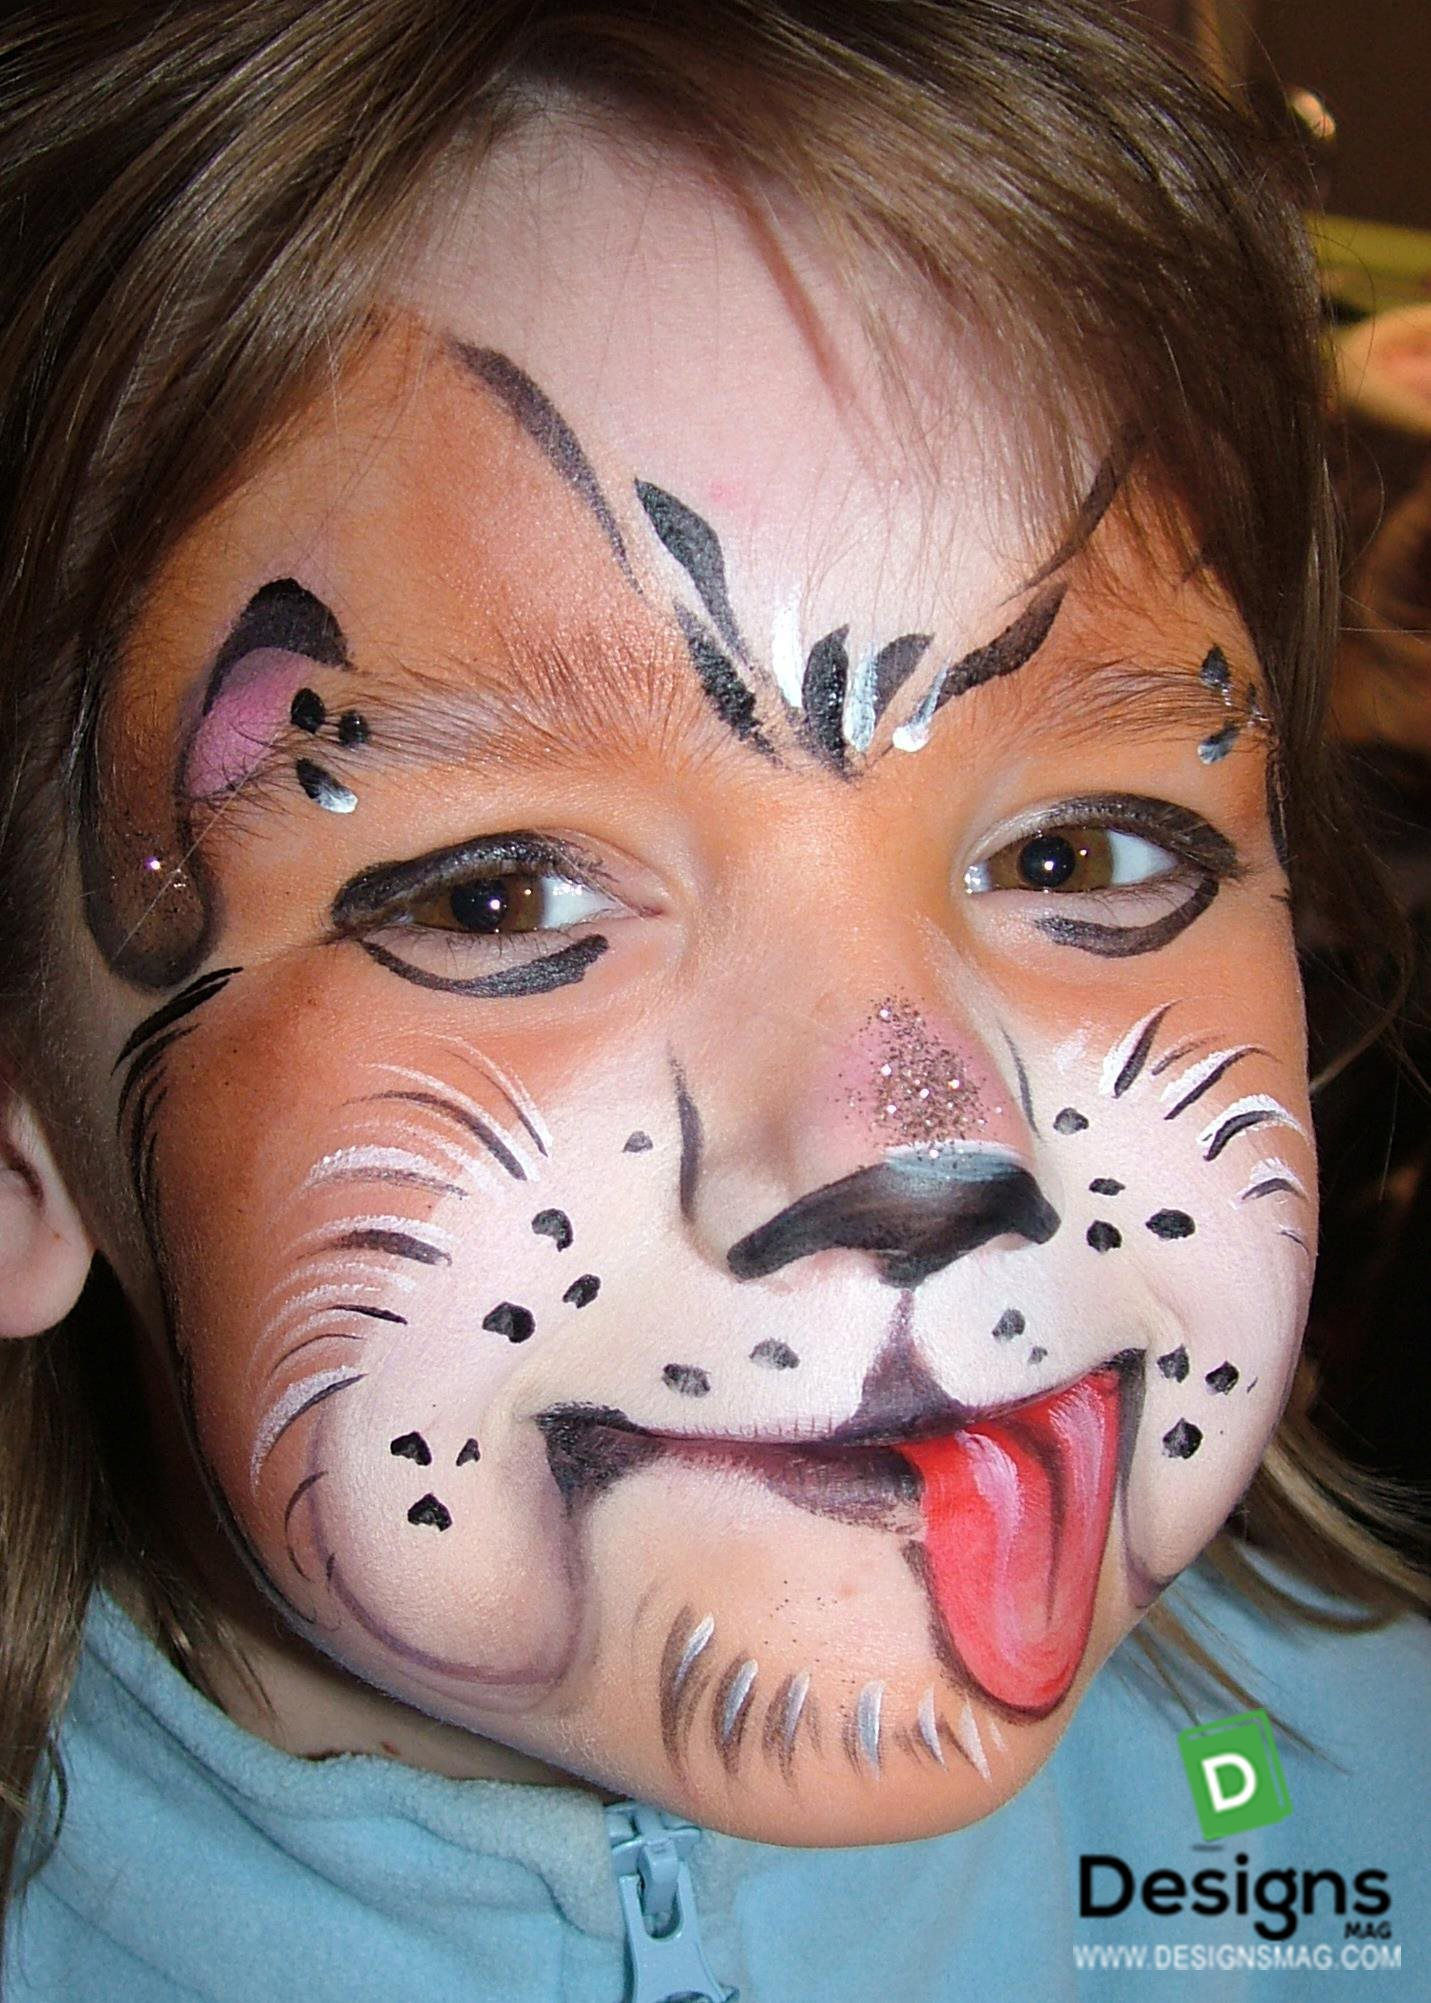 Hund Kinderschminken 75 Easy Face Painting Ideas Face Painting Makeup Page 4